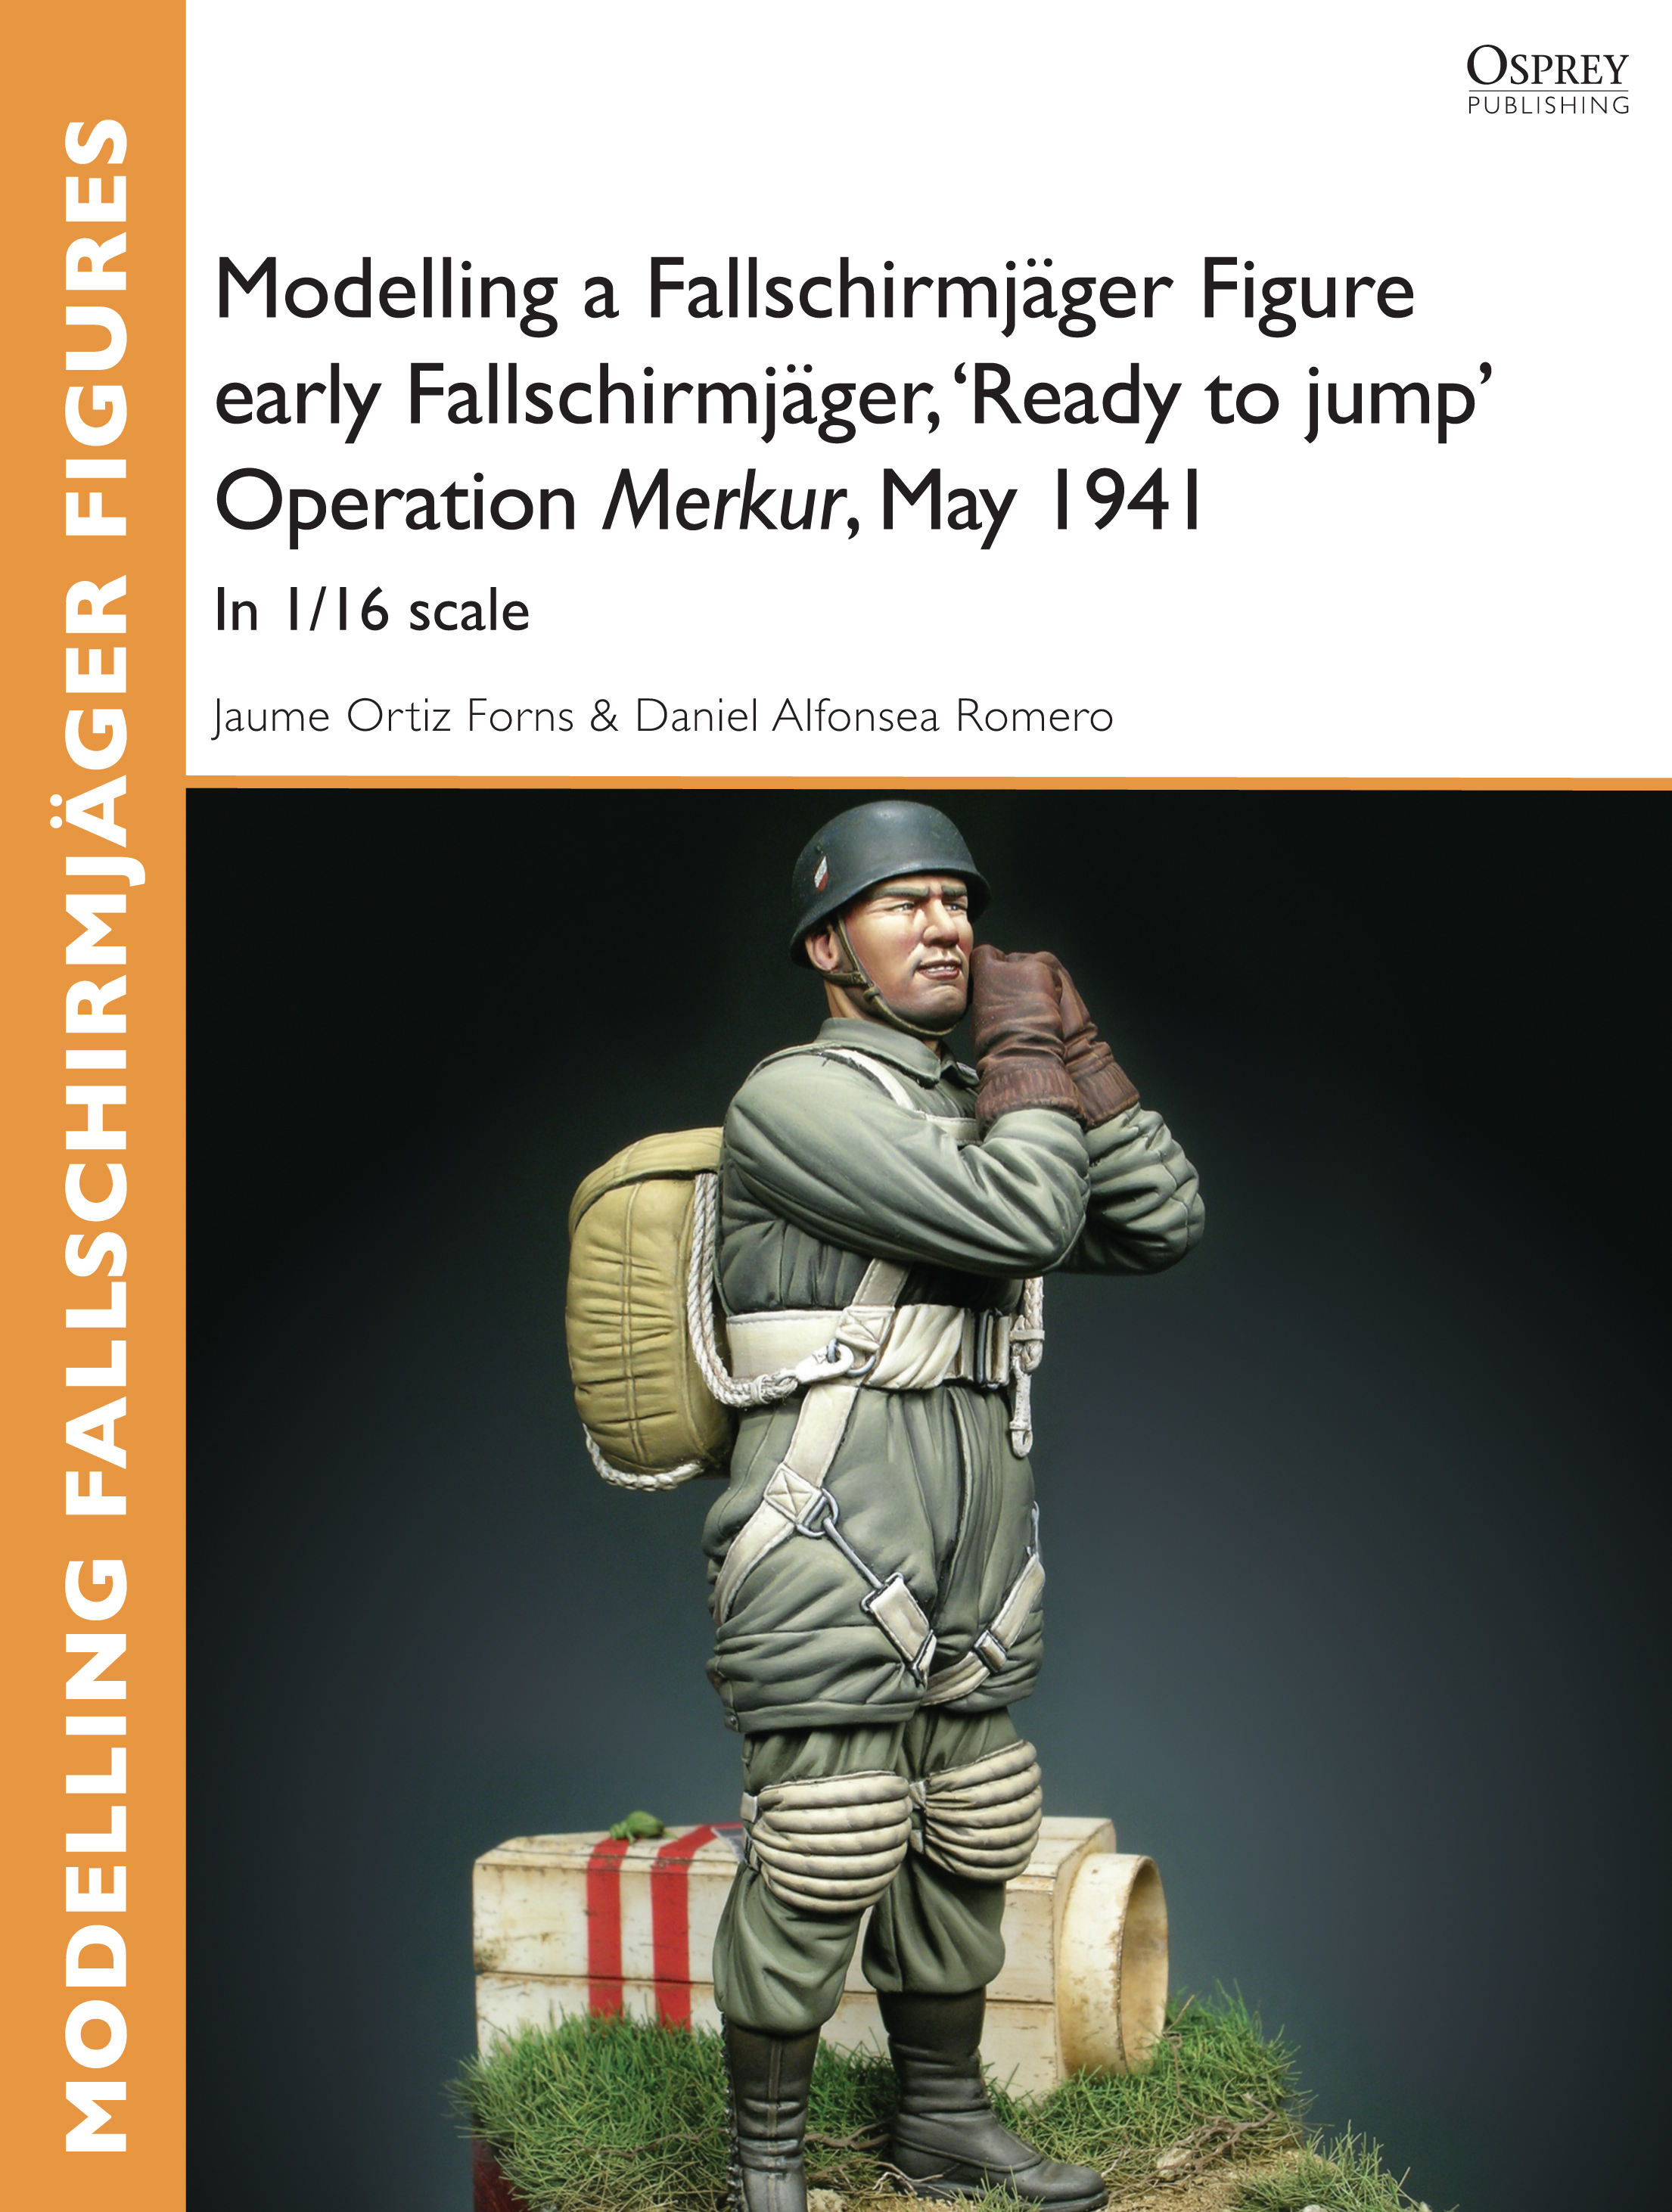 Modelling a Fallschirmj�ger Figure early Fallschirmj�ger,  'Ready to jump' Operation Merkur,  May 1941: In 1/16 scale